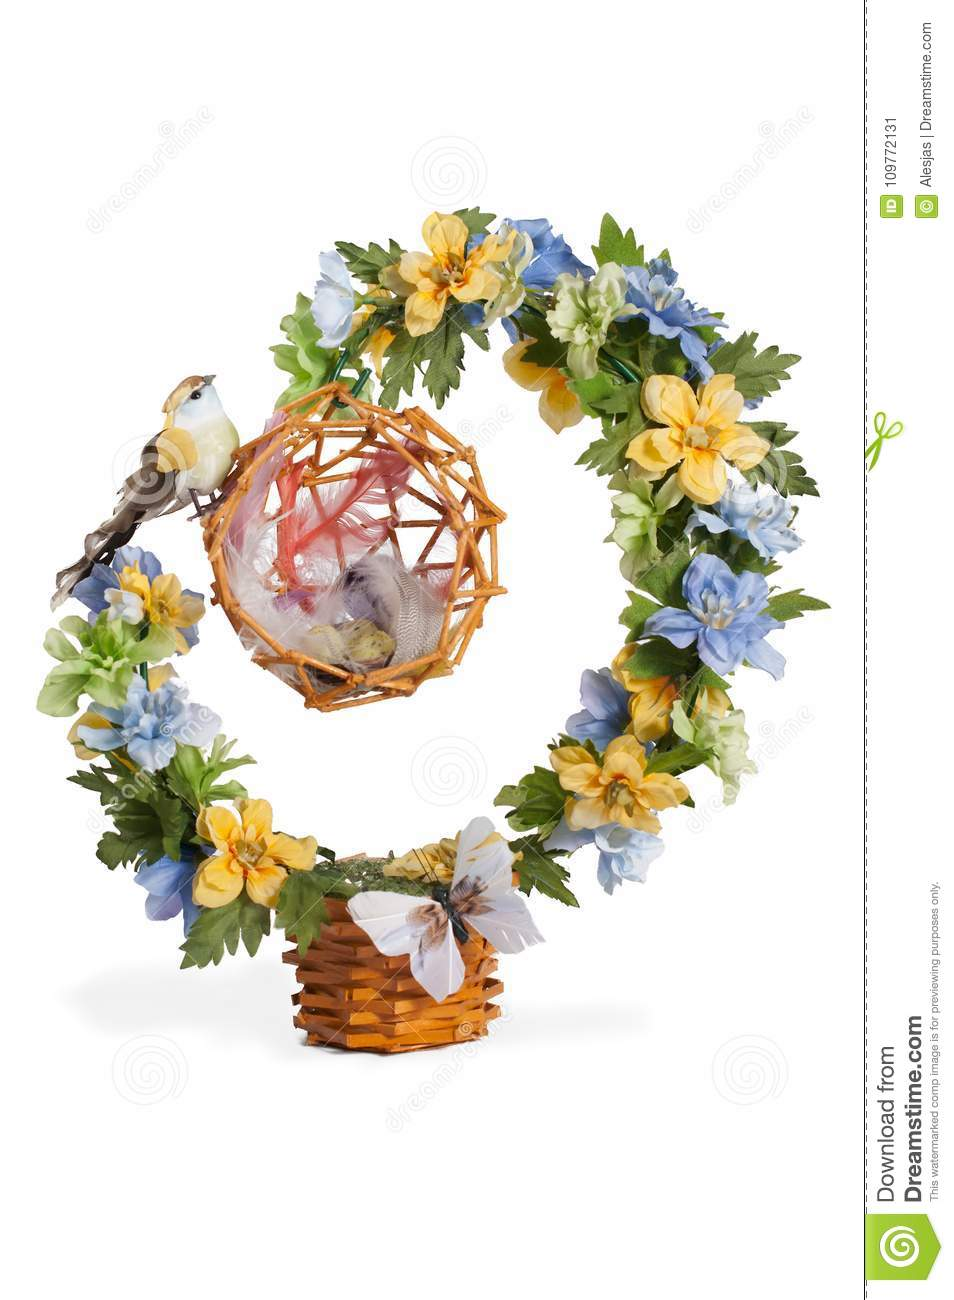 Floral Topiary With A Bird And Its Nest Over White Background Stock Image Image Of Floral Background 109772131